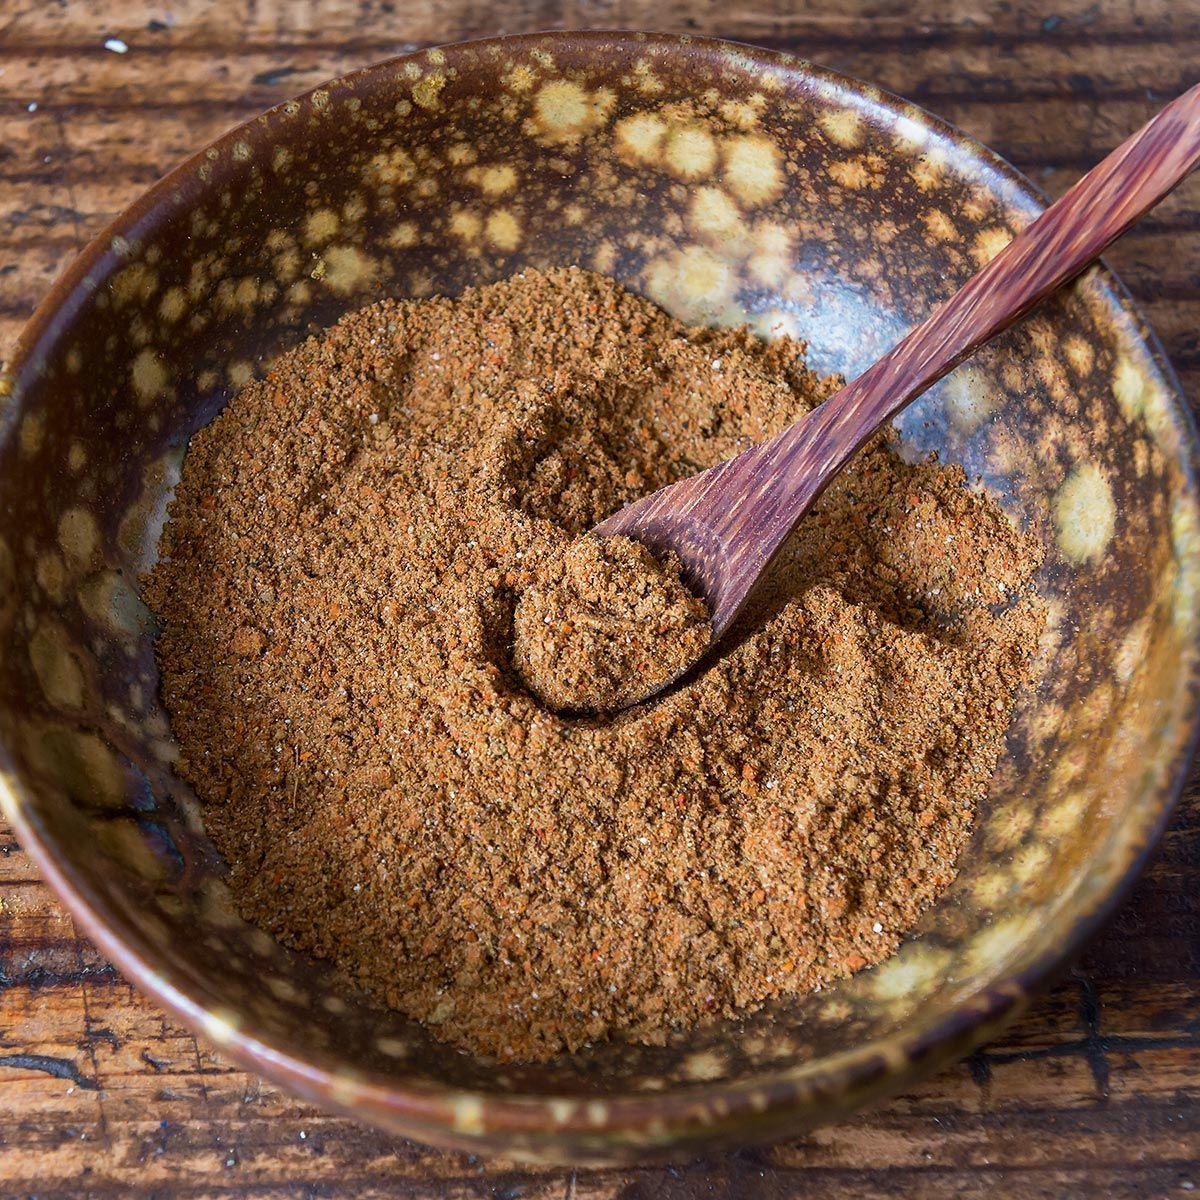 Make your own homemade gluten free taco seasoning! You save a lot compared to store-bought taco seasoning packets and on top of that you get to avoid the fillers and preservatives. Most likely you already have all of the taco mix ingredients in your spice cabinet. For 1 lb | Best | Clean | Mild | Large batch | Simple | one serving | bulk #glutenfree #recipe #DIY #tacos #paleo #keto #easy #seasoning #spices #taco #Mexican #Spicy #Healthy #whole30 #beef #lowcarb #tacoseasoningpacket Make your own #tacoseasoningpacket